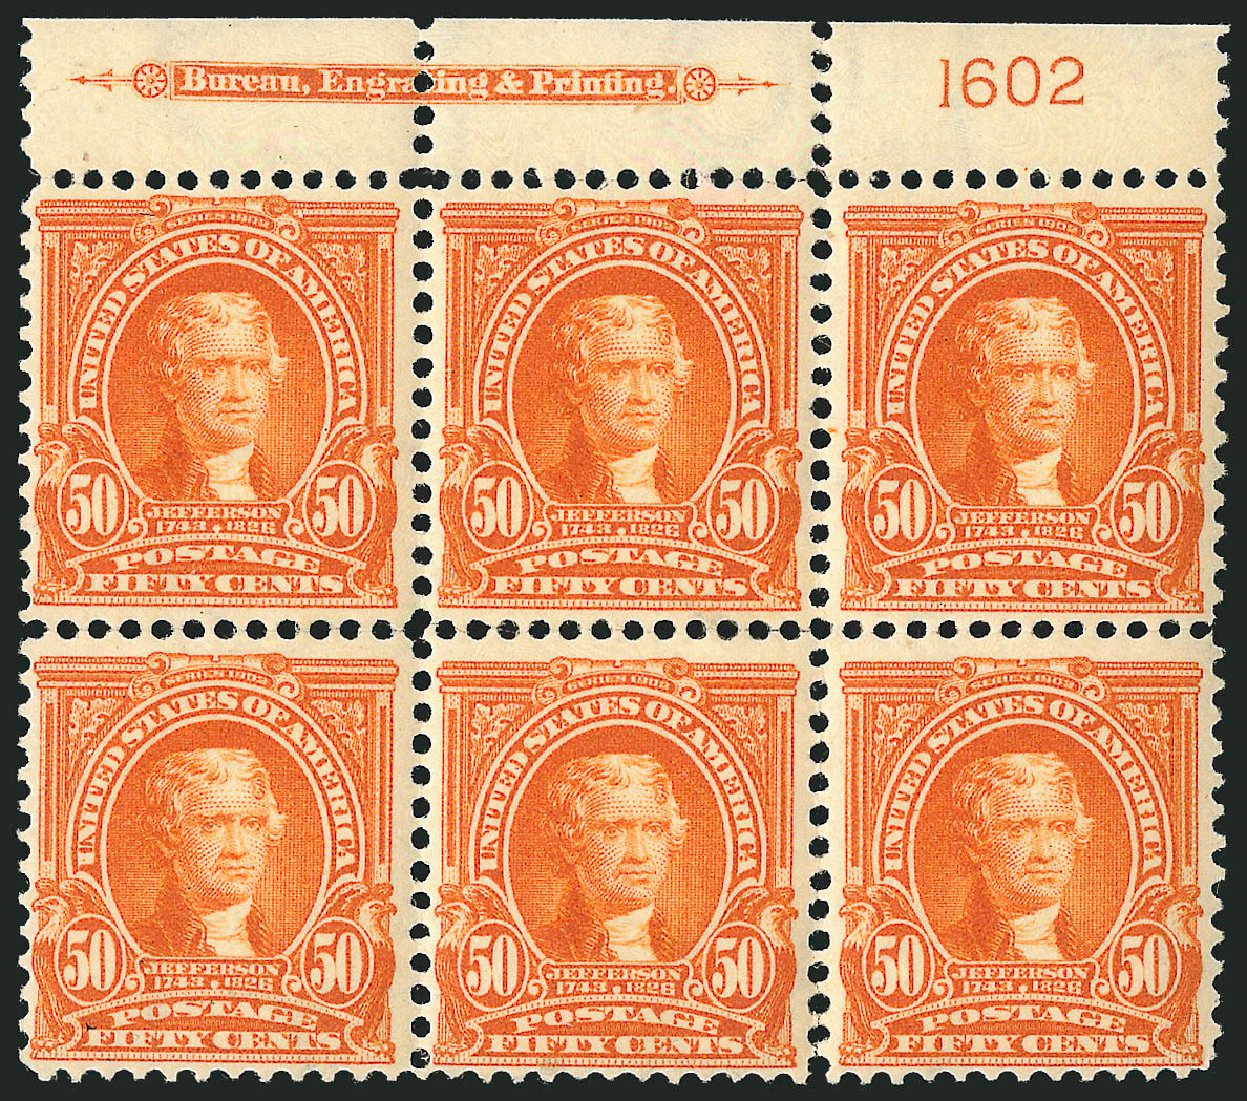 Price of US Stamp Scott Cat. # 310 - 50c 1903 Jefferson. Robert Siegel Auction Galleries, Apr 2015, Sale 1096, Lot 543